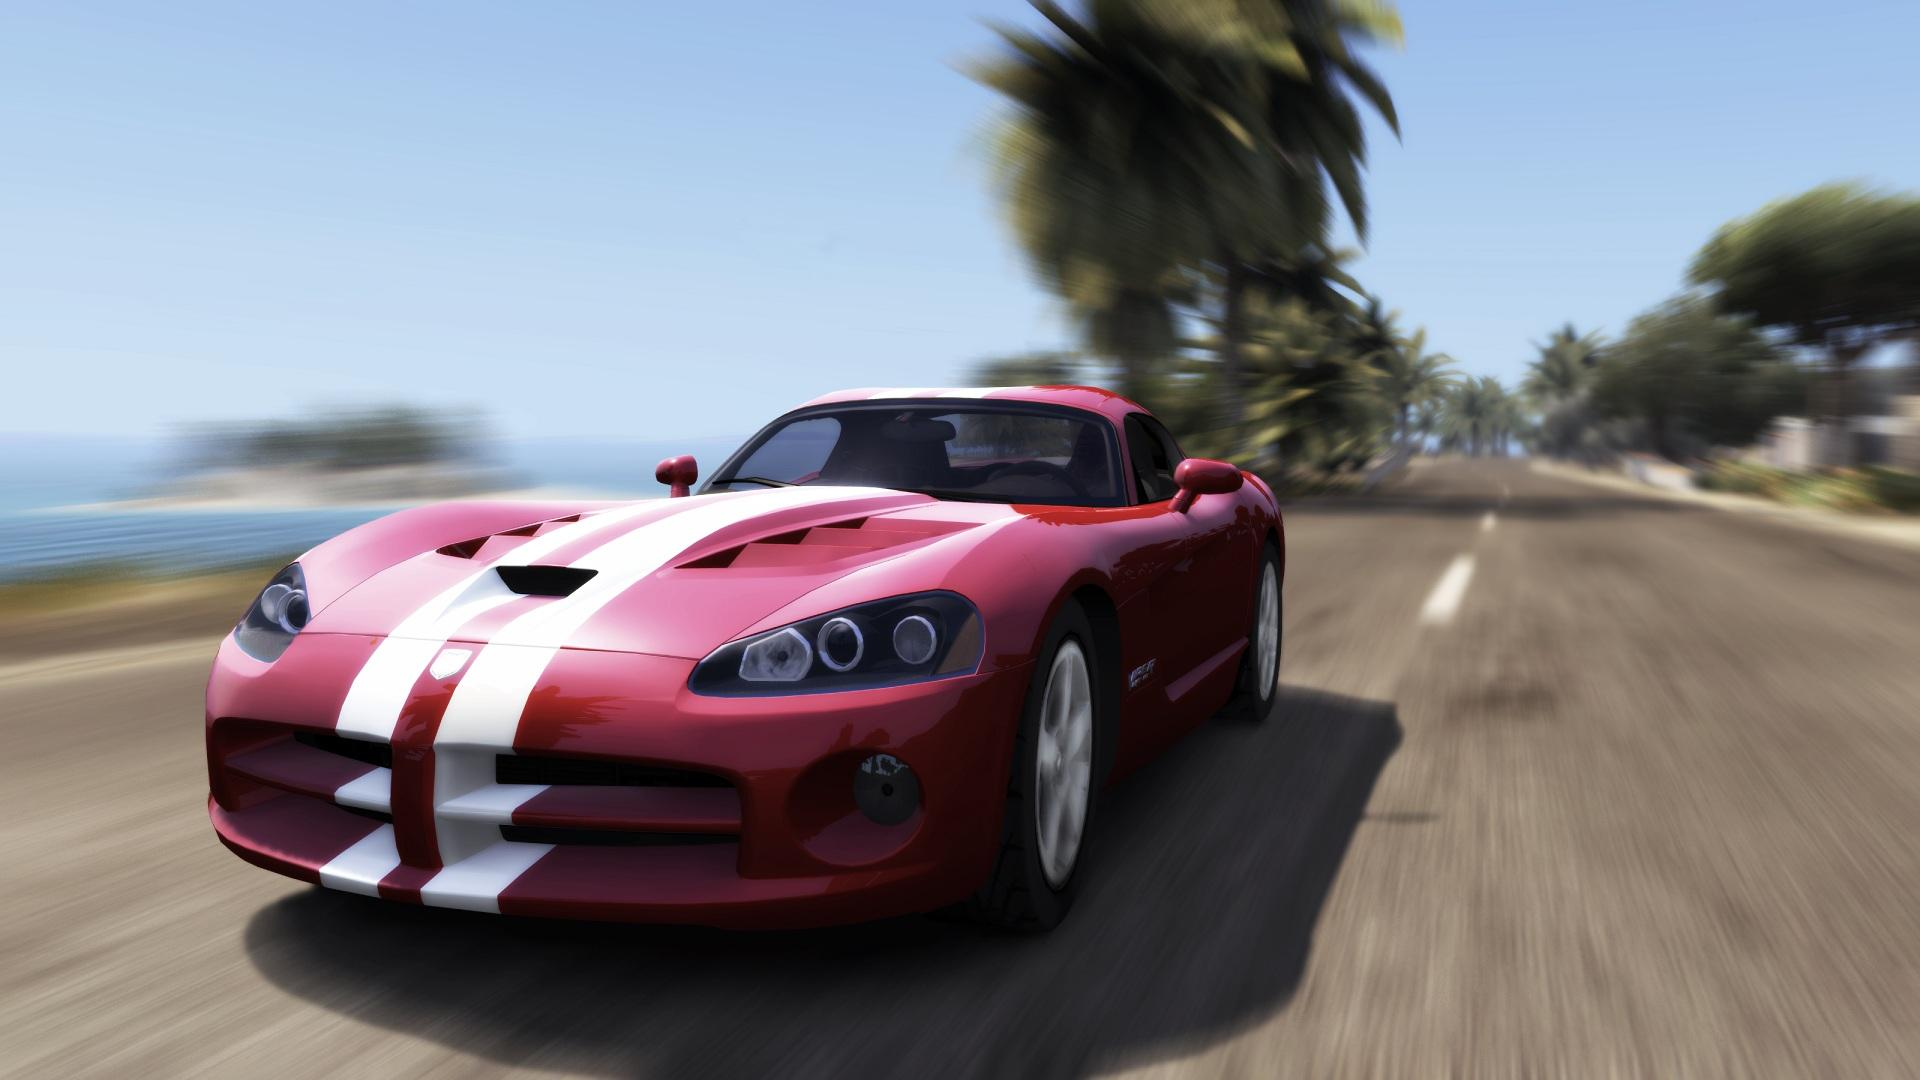 Money cheat code test drive unlimited 2 xbox 360: slots game for.